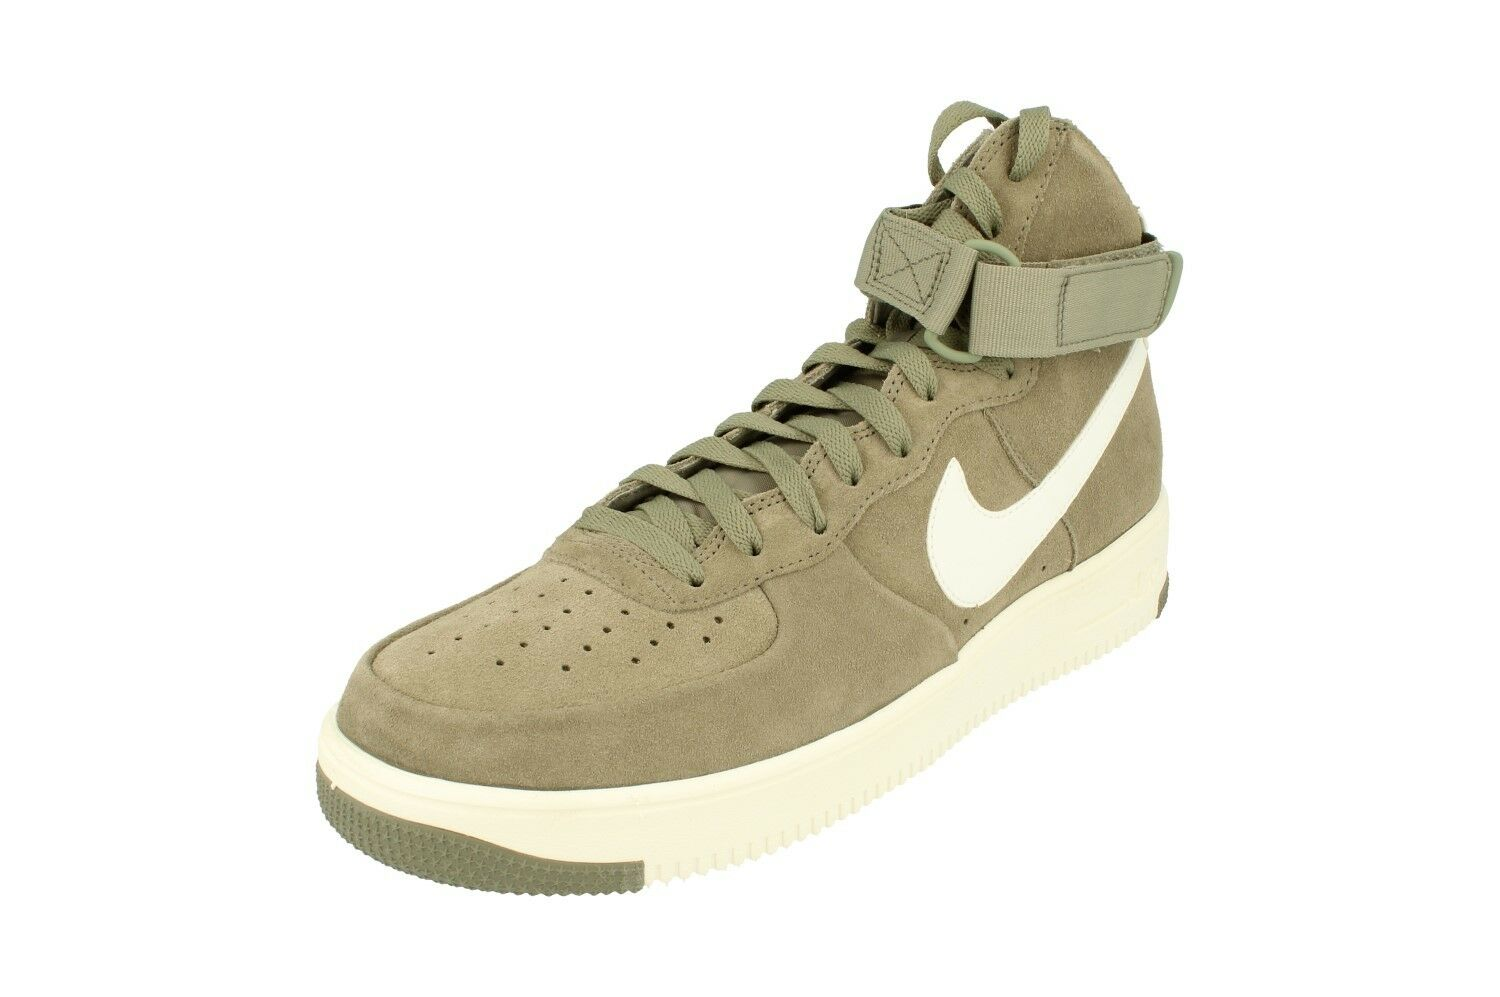 Nike Air Force 1 Ultraforce Hi Mens Trainers 880854 Sneakers shoes 003